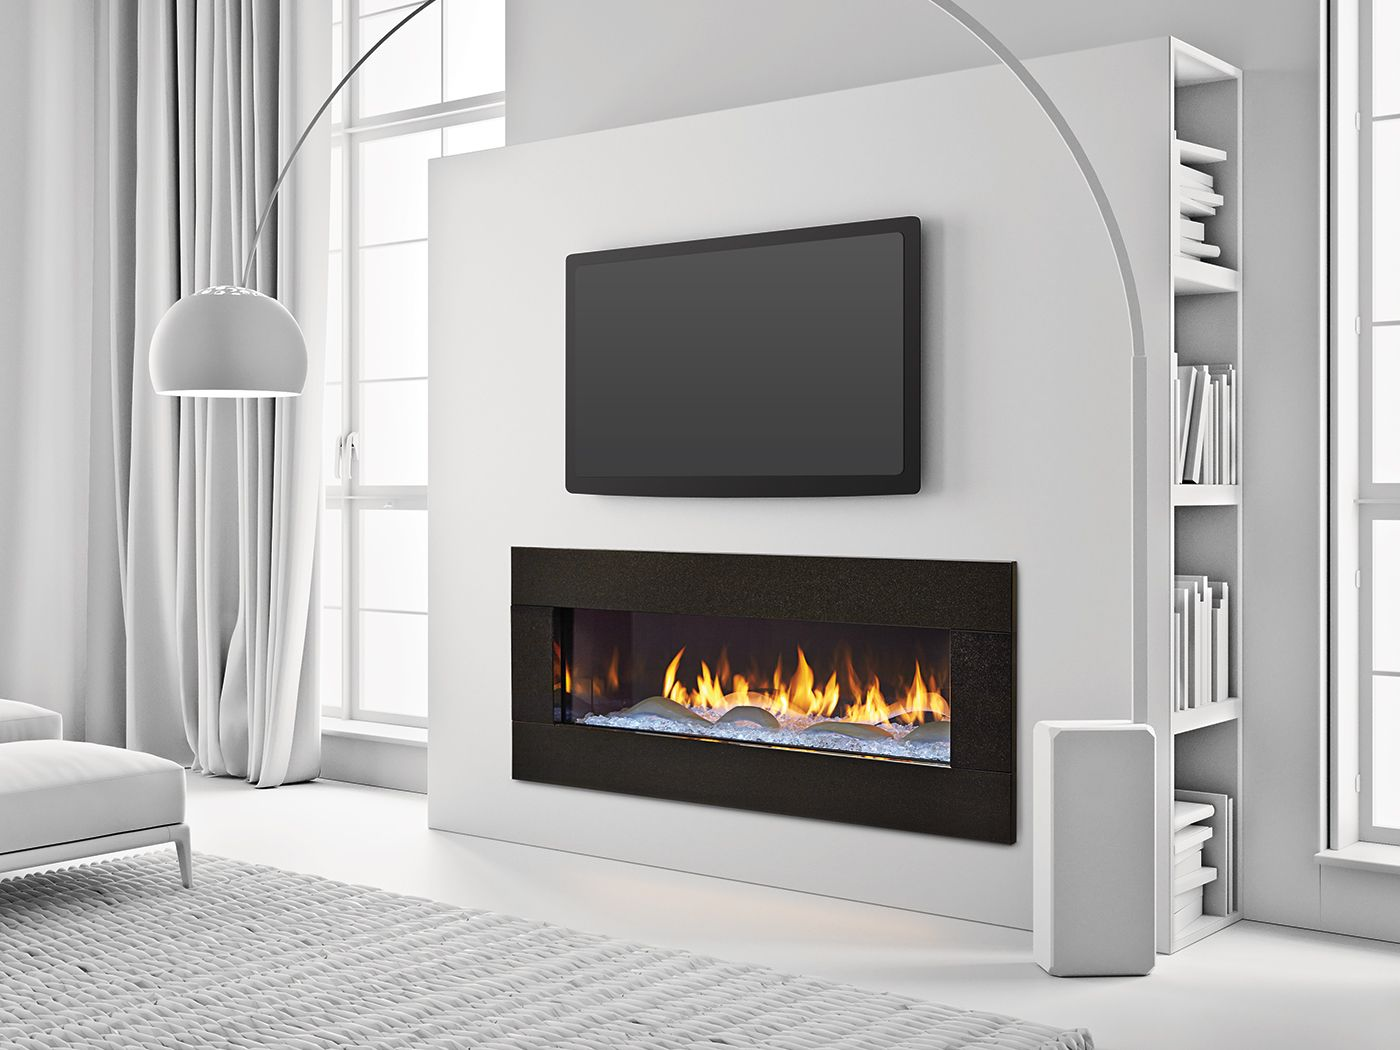 Designed specifically for heat glo by renowned sculptor for Bedroom electric fireplace